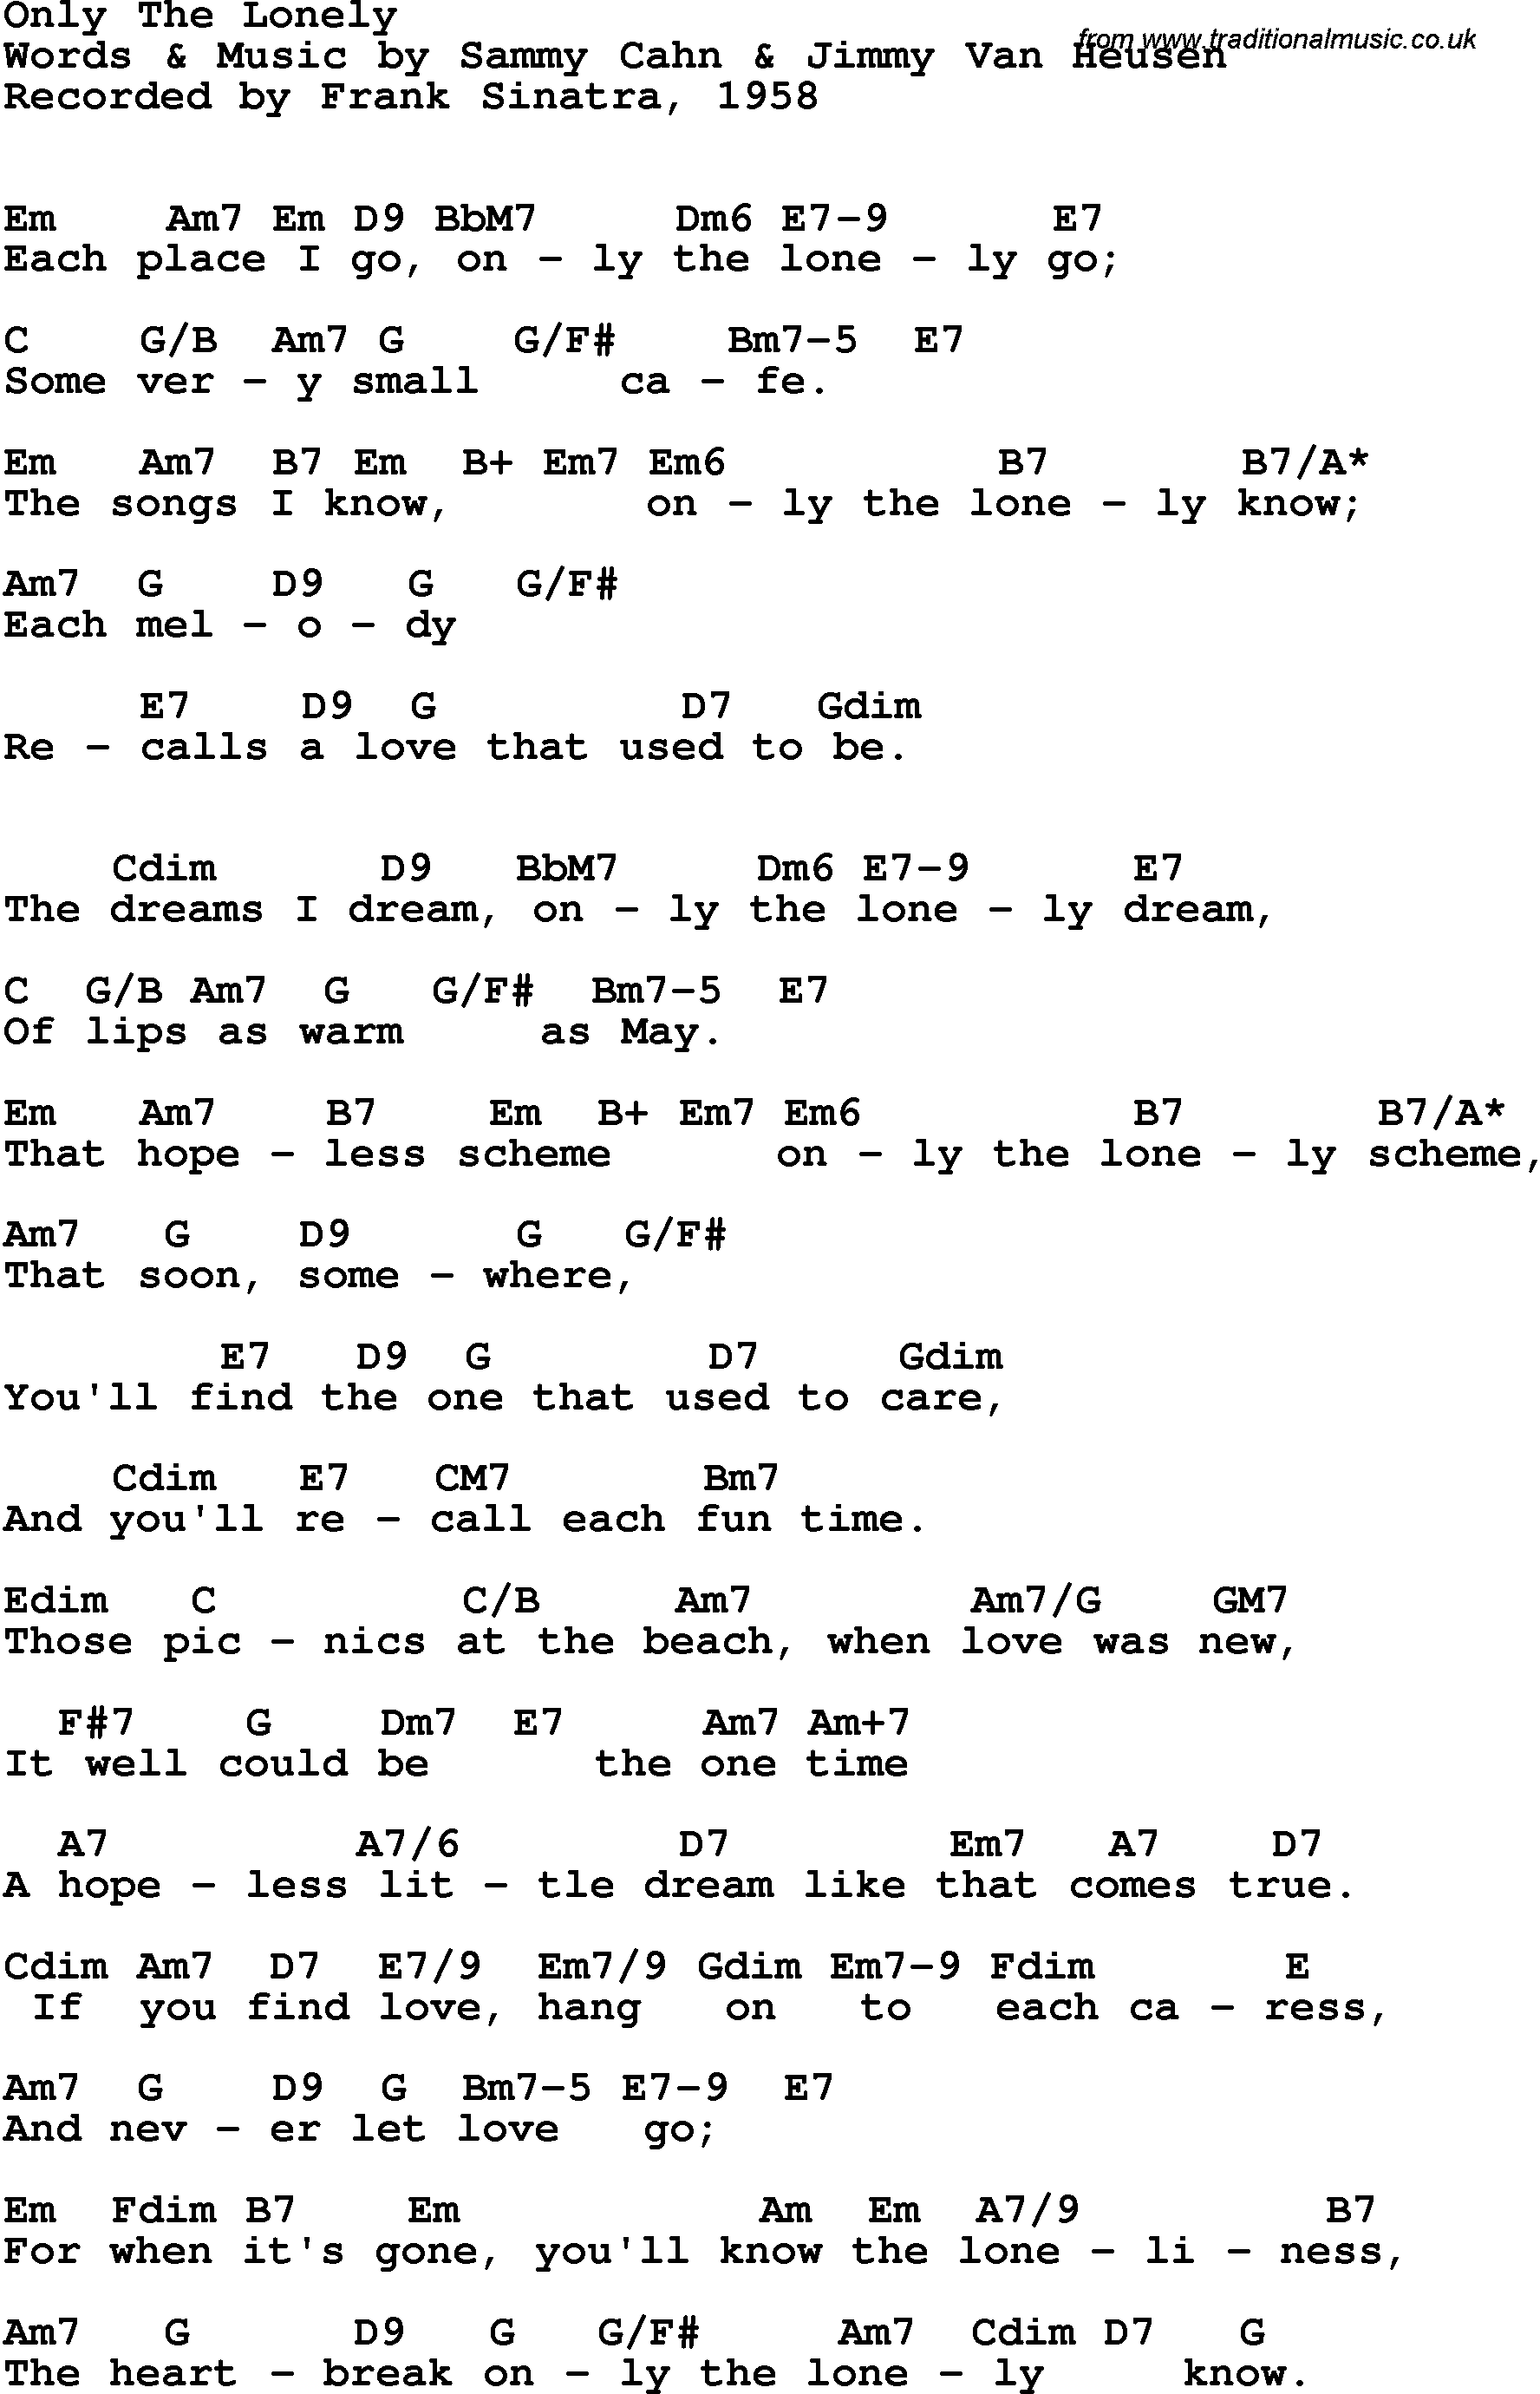 Song Lyrics With Guitar Chords For Only The Lonely Frank Sinatra 1958